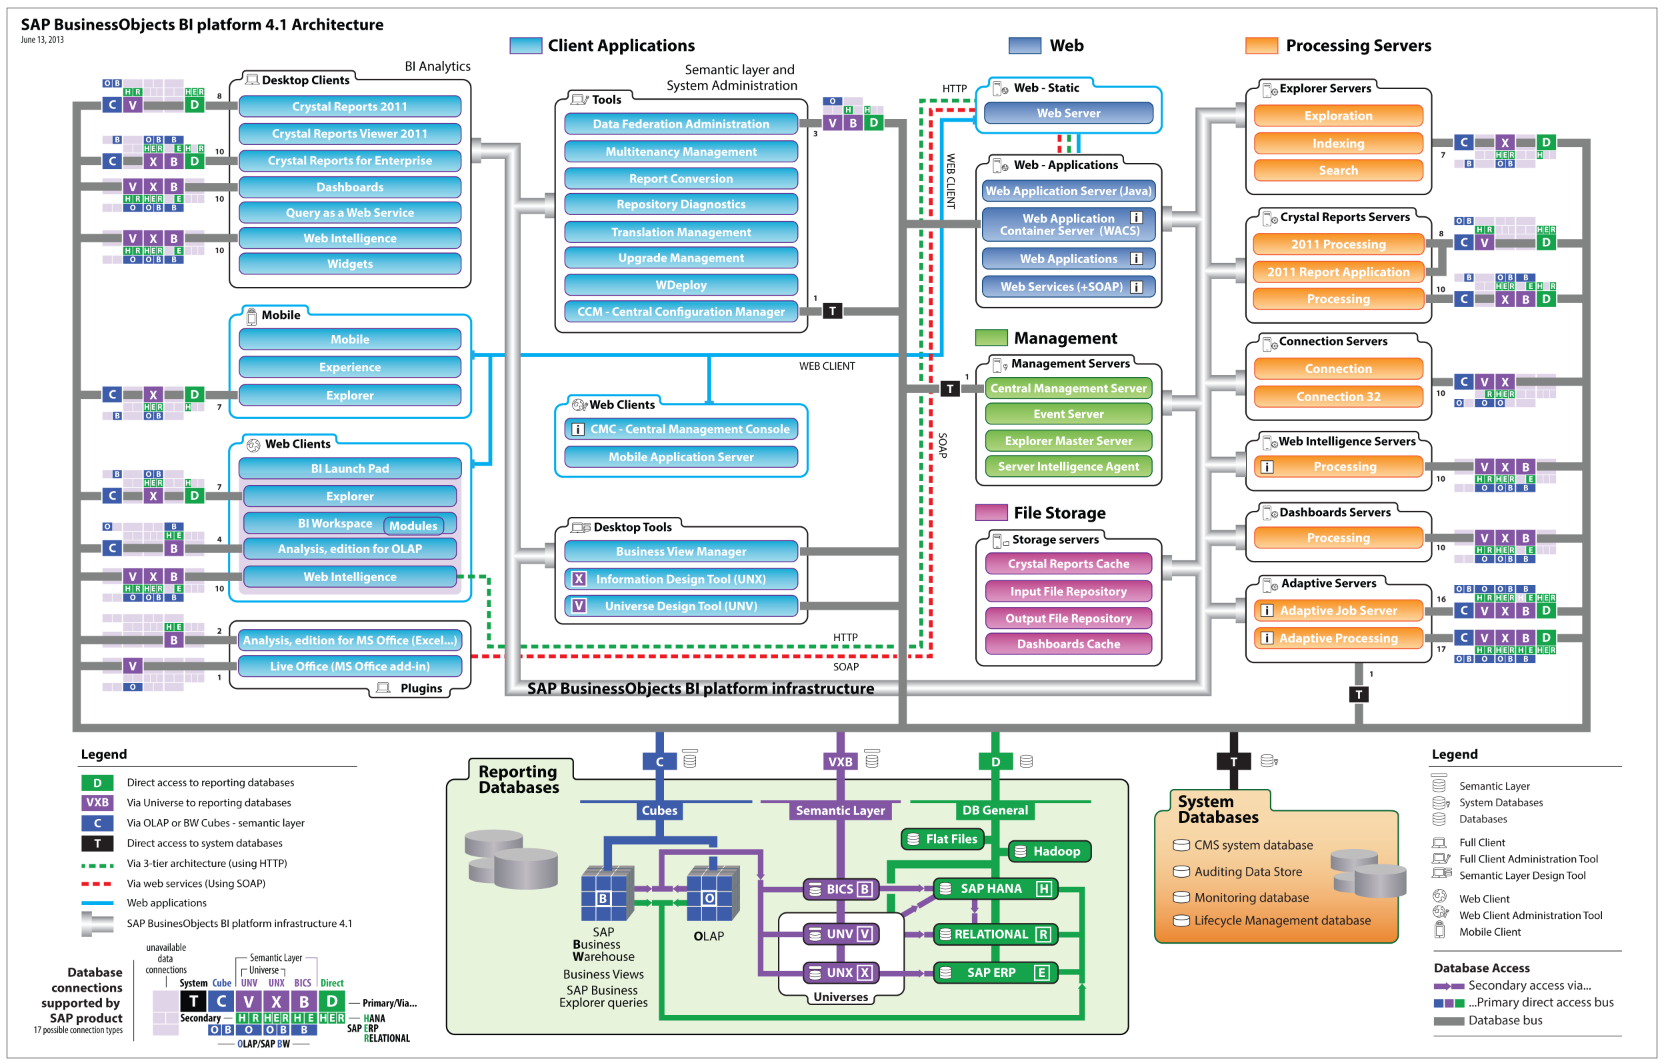 sap erp architecture diagram chevy electronic distributor wiring image result for tech platform system